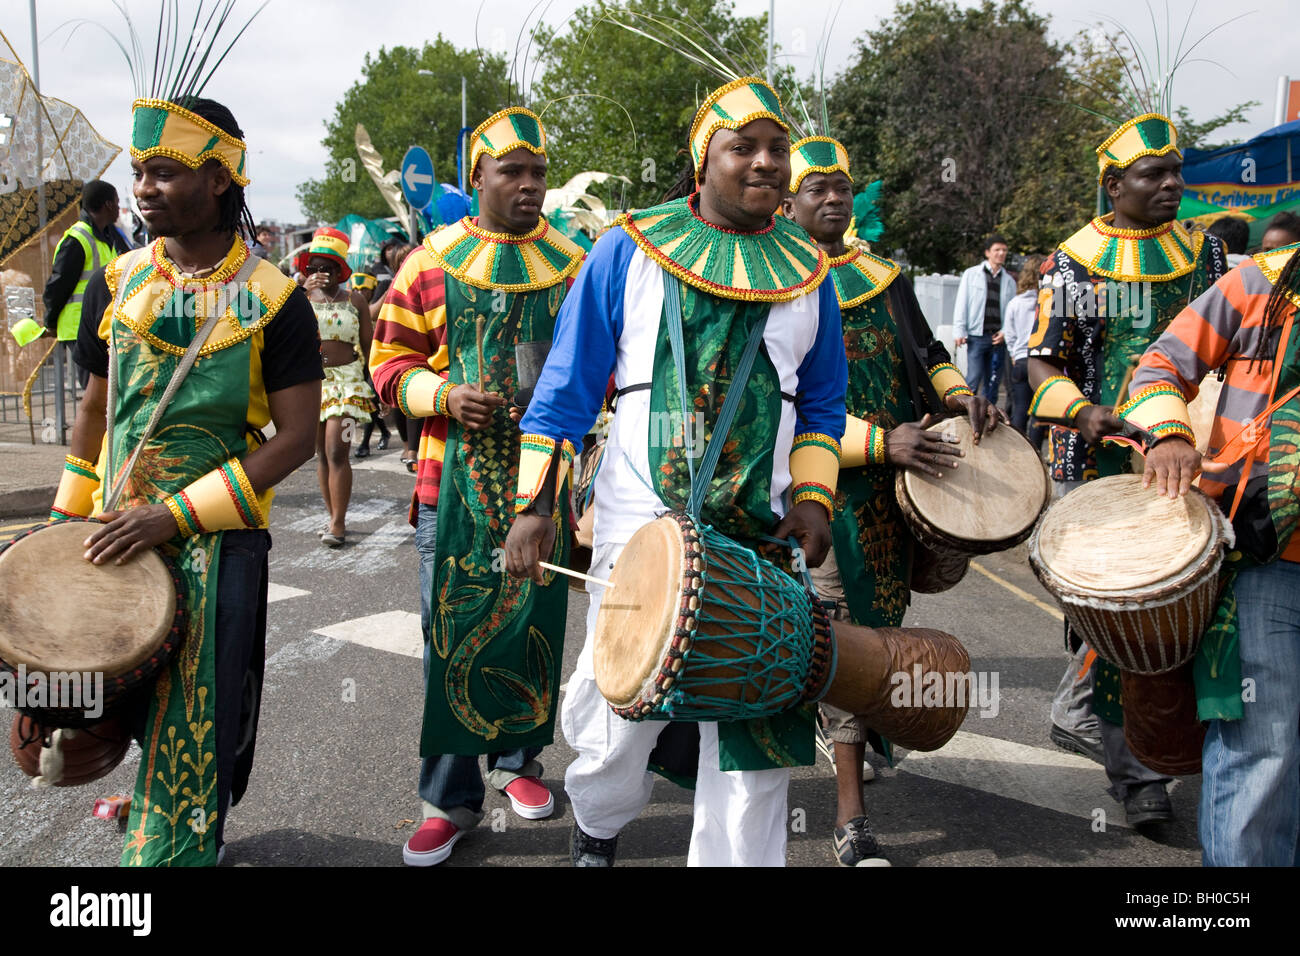 Young men in carnival costume. Band of drummers. Notting Hill Carnival, Notting Hill. London. England. UK. - Stock Image